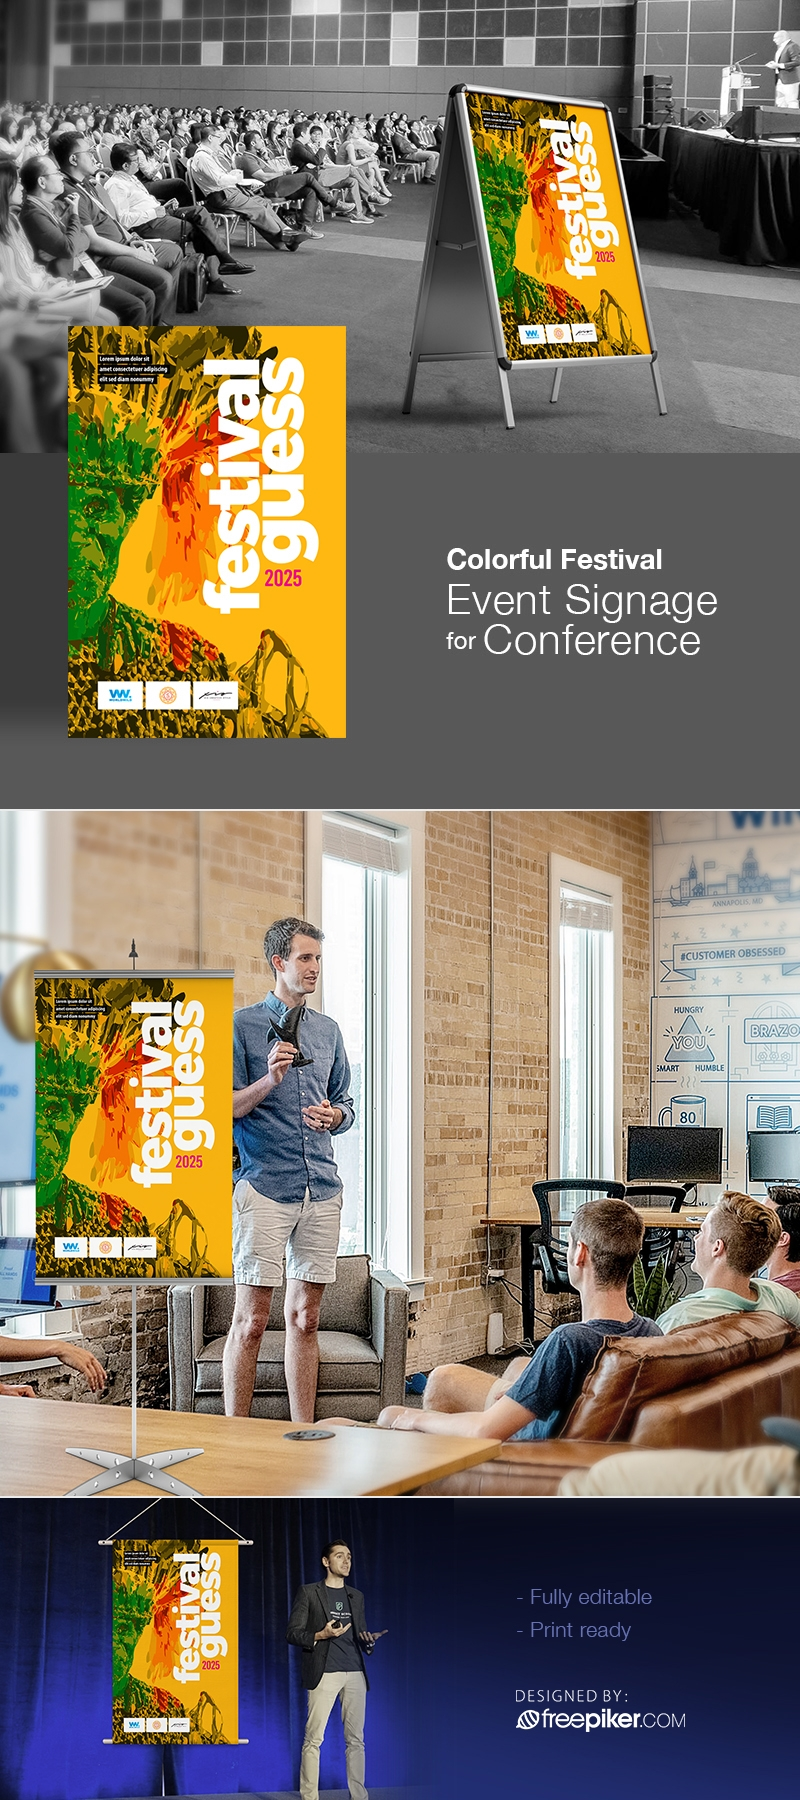 Colourful Festival Event Signage For Conference